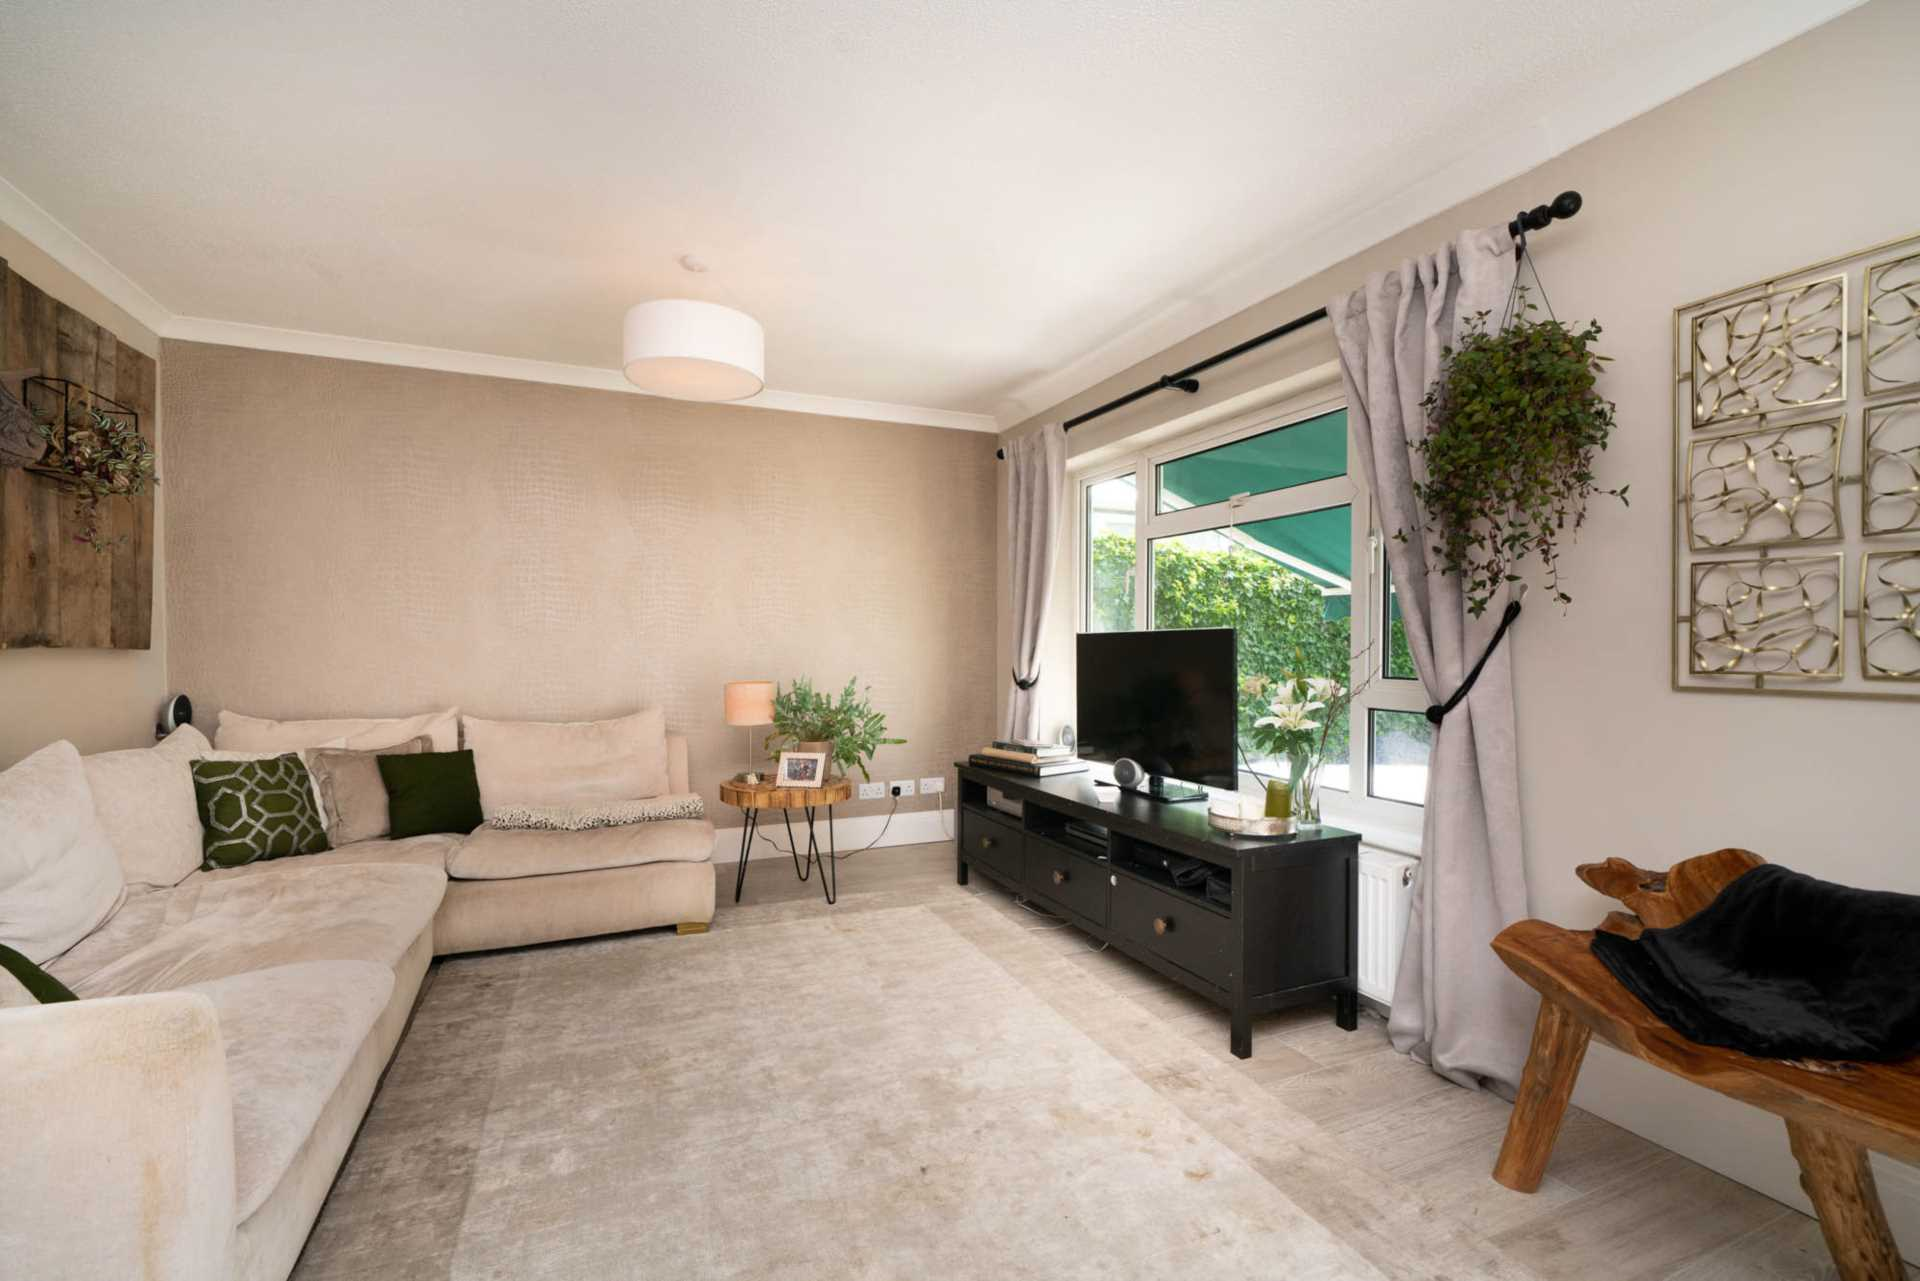 REFURBISHED 4 DOUBLE BEDROOM - SOUGHT AFTER OLD TOWN, HP2, Image 18